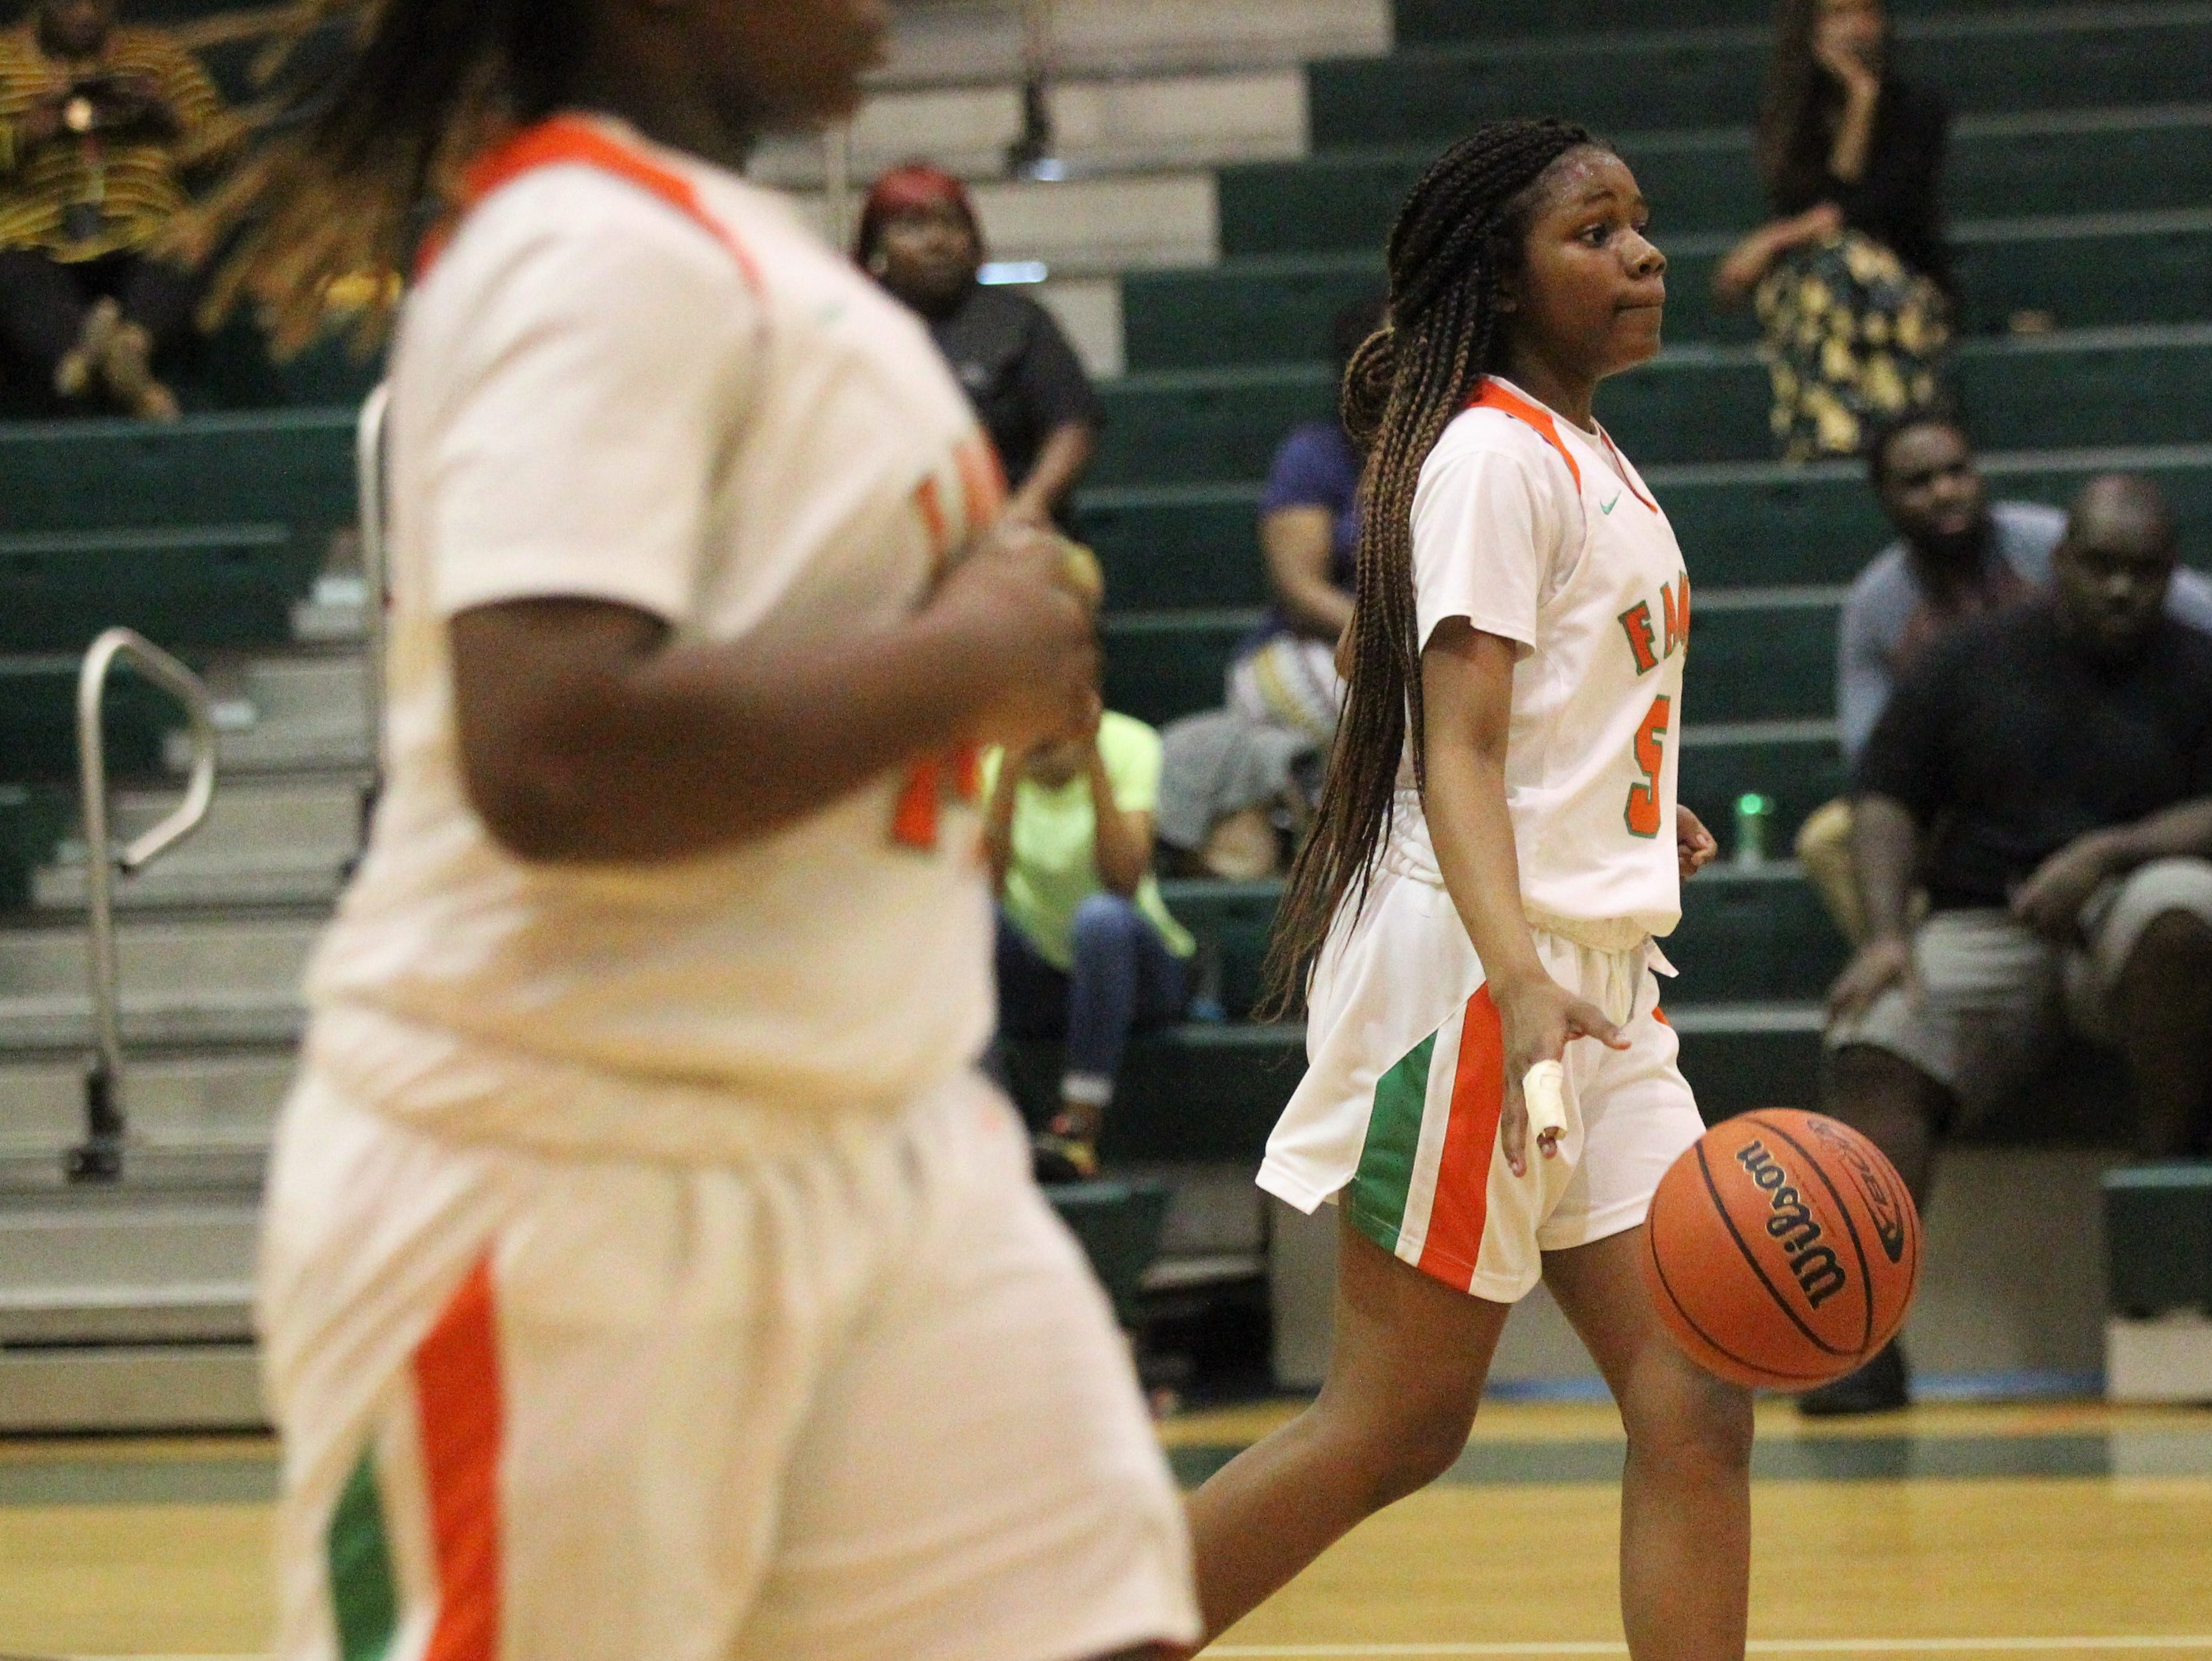 FAMU DRS freshman Alexandria Reddick brings the ball up the court as FAMU DRS' girls basketball team beat NFC 59-41 for a District 1-3A title on Jan. 7, 2019.